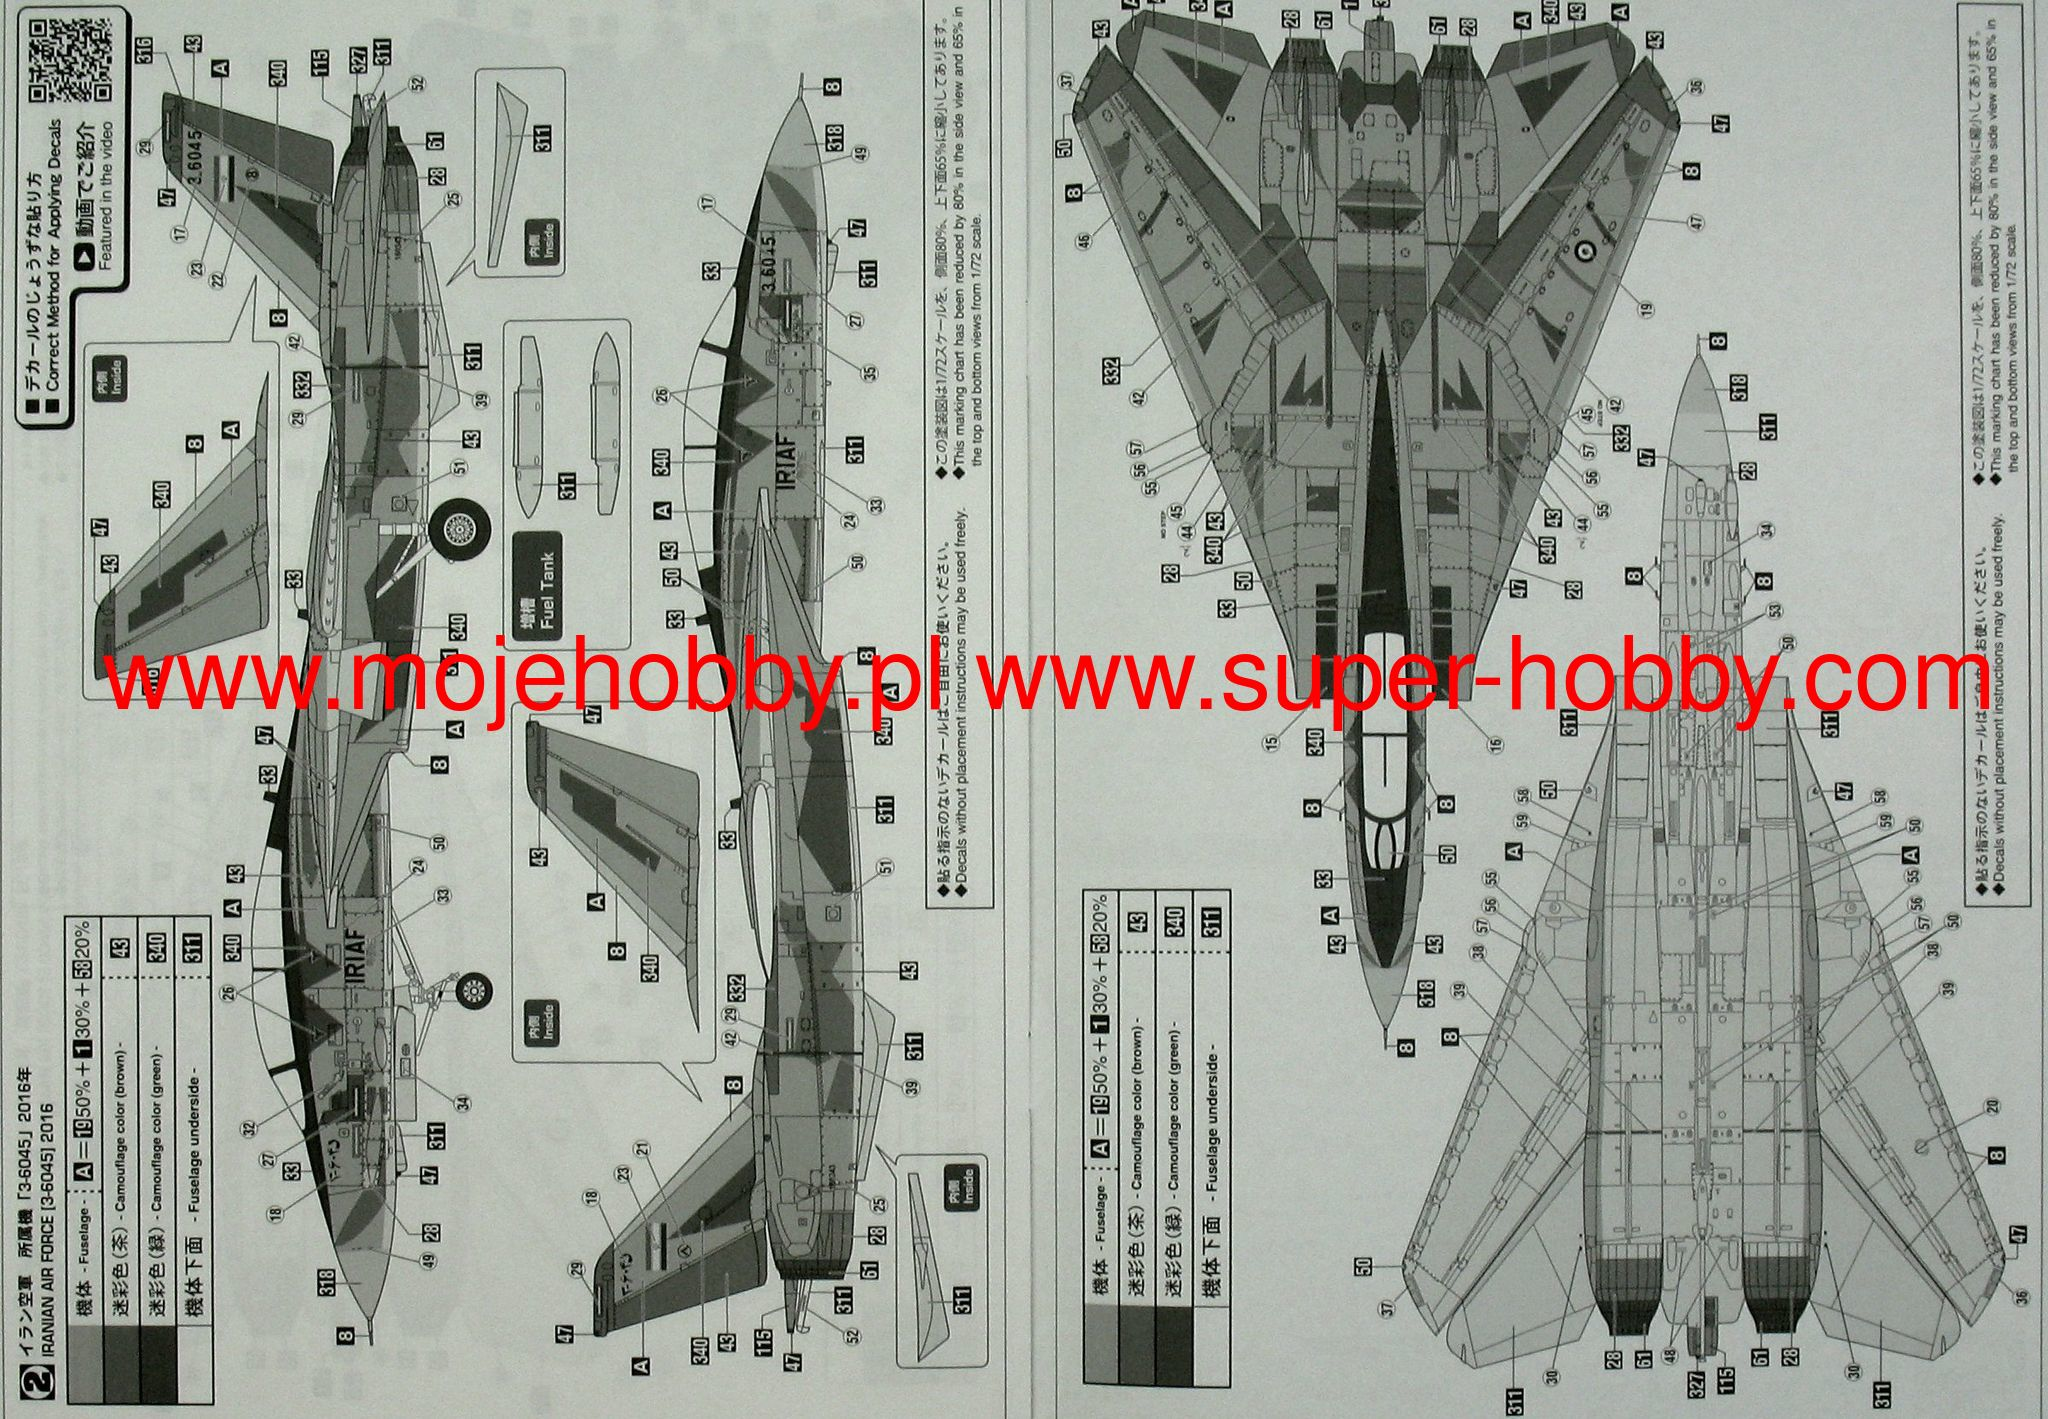 F 14a tomcat iranian air force new desert scheme hasegawa 02242 2has022428g 2has022429g nvjuhfo Choice Image